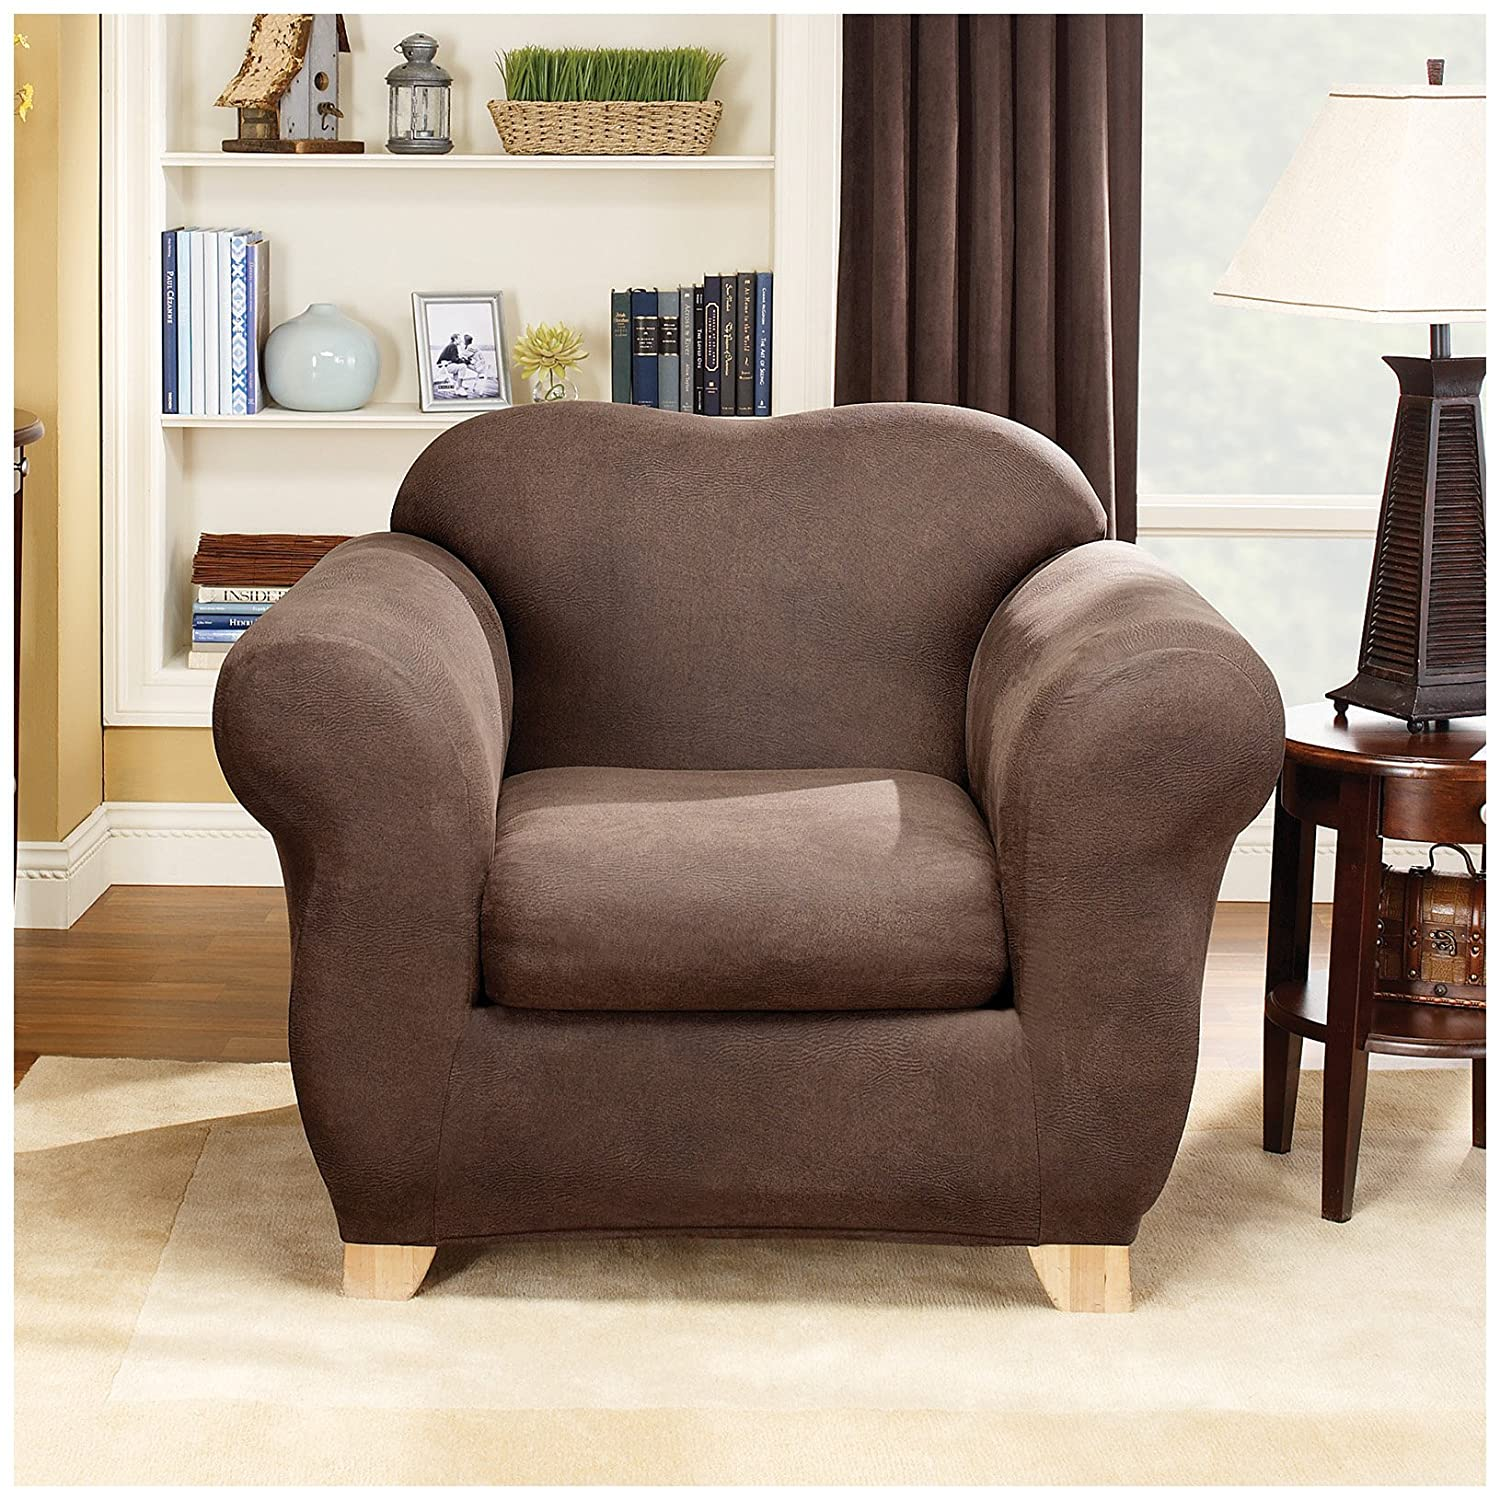 Amazon.com: Sure Fit Stretch Leather 2 Piece   Sofa Slipcover   Brown  (SF37336): Home U0026 Kitchen